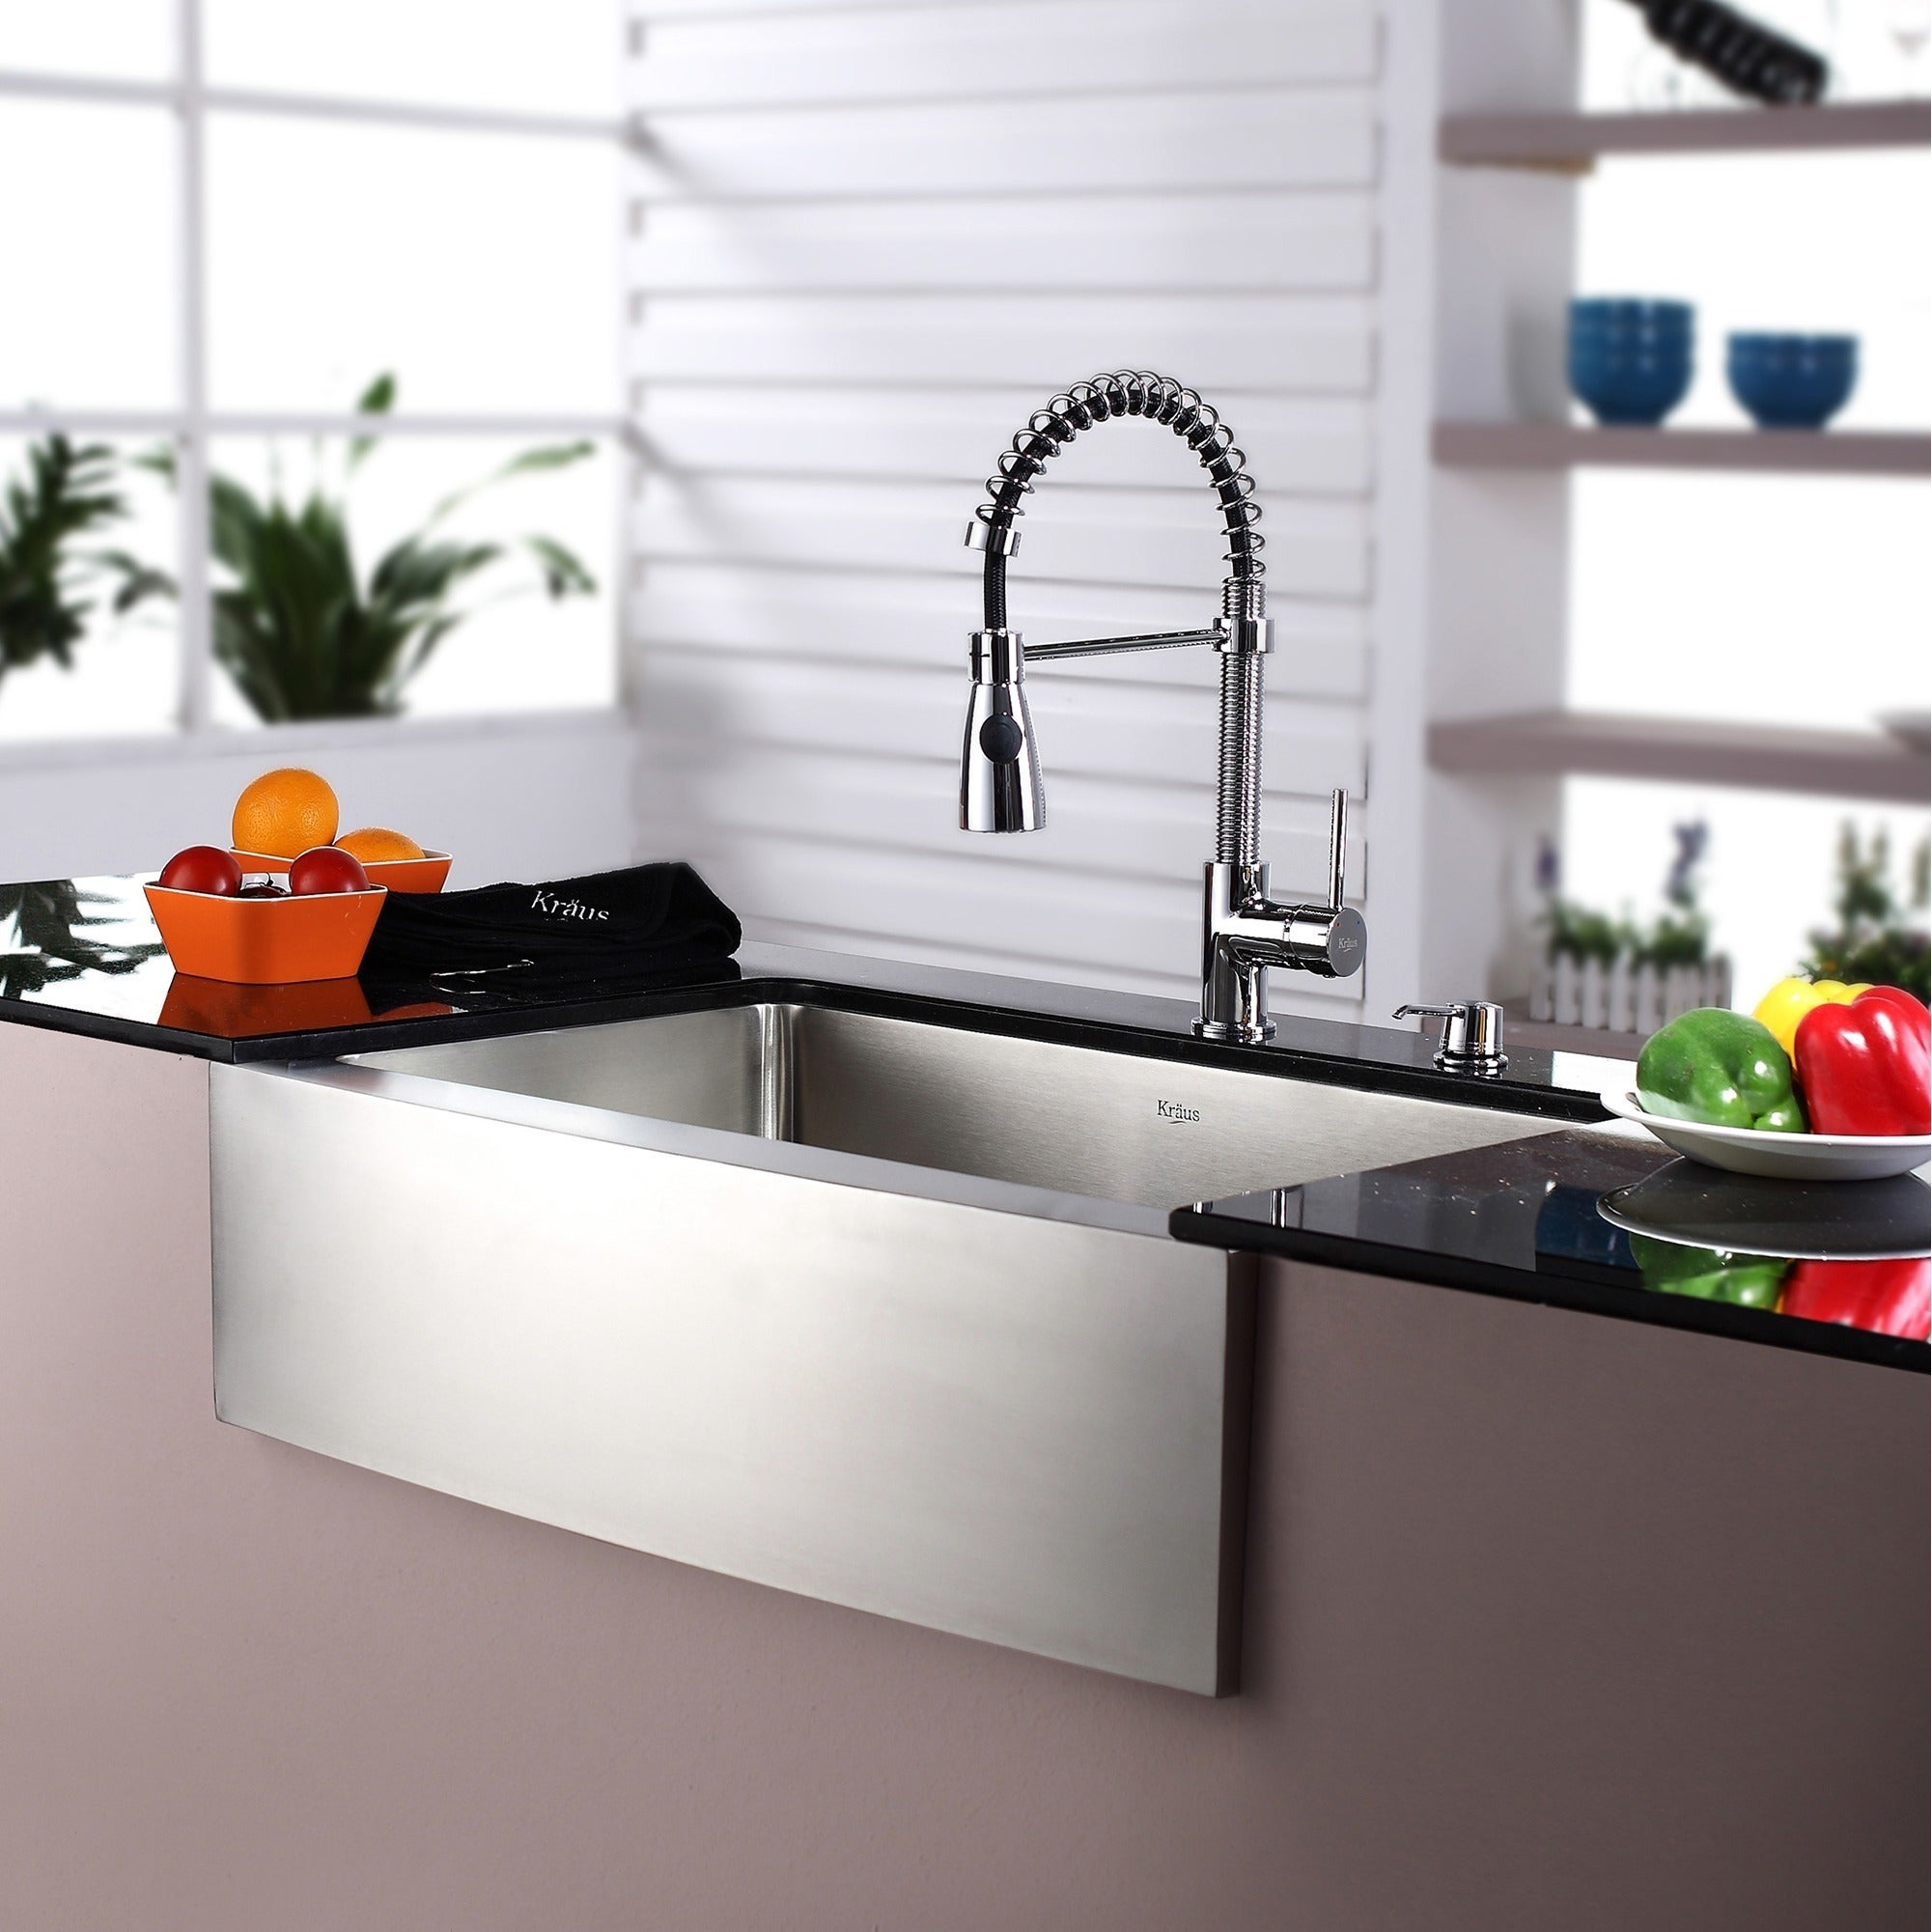 kitchen faucets sink faucet sinks farmhouse farm with of ideas perfect new beautiful kohler style